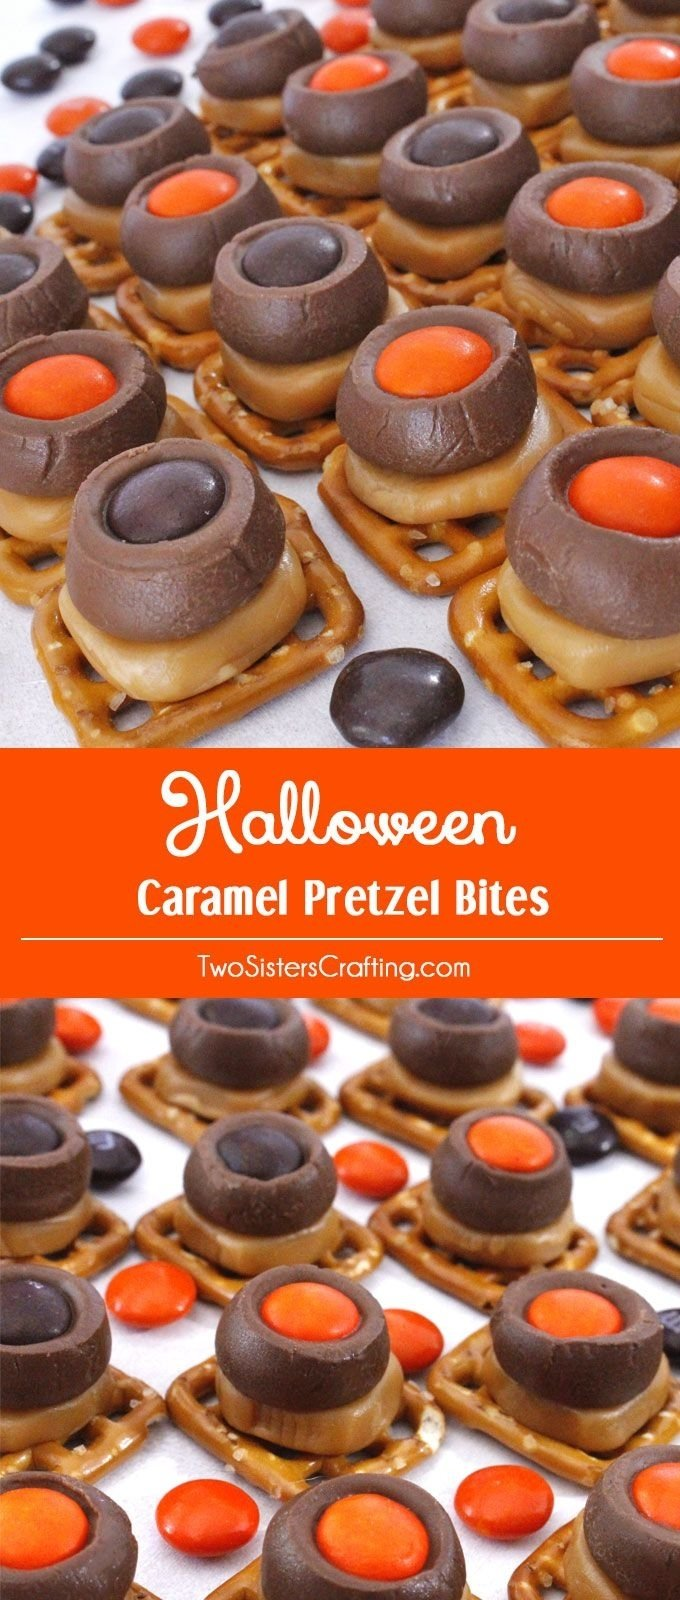 10 Unique Halloween Food Ideas For Adults Easy halloween caramel pretzel bites mariee tuto et soiree 2021